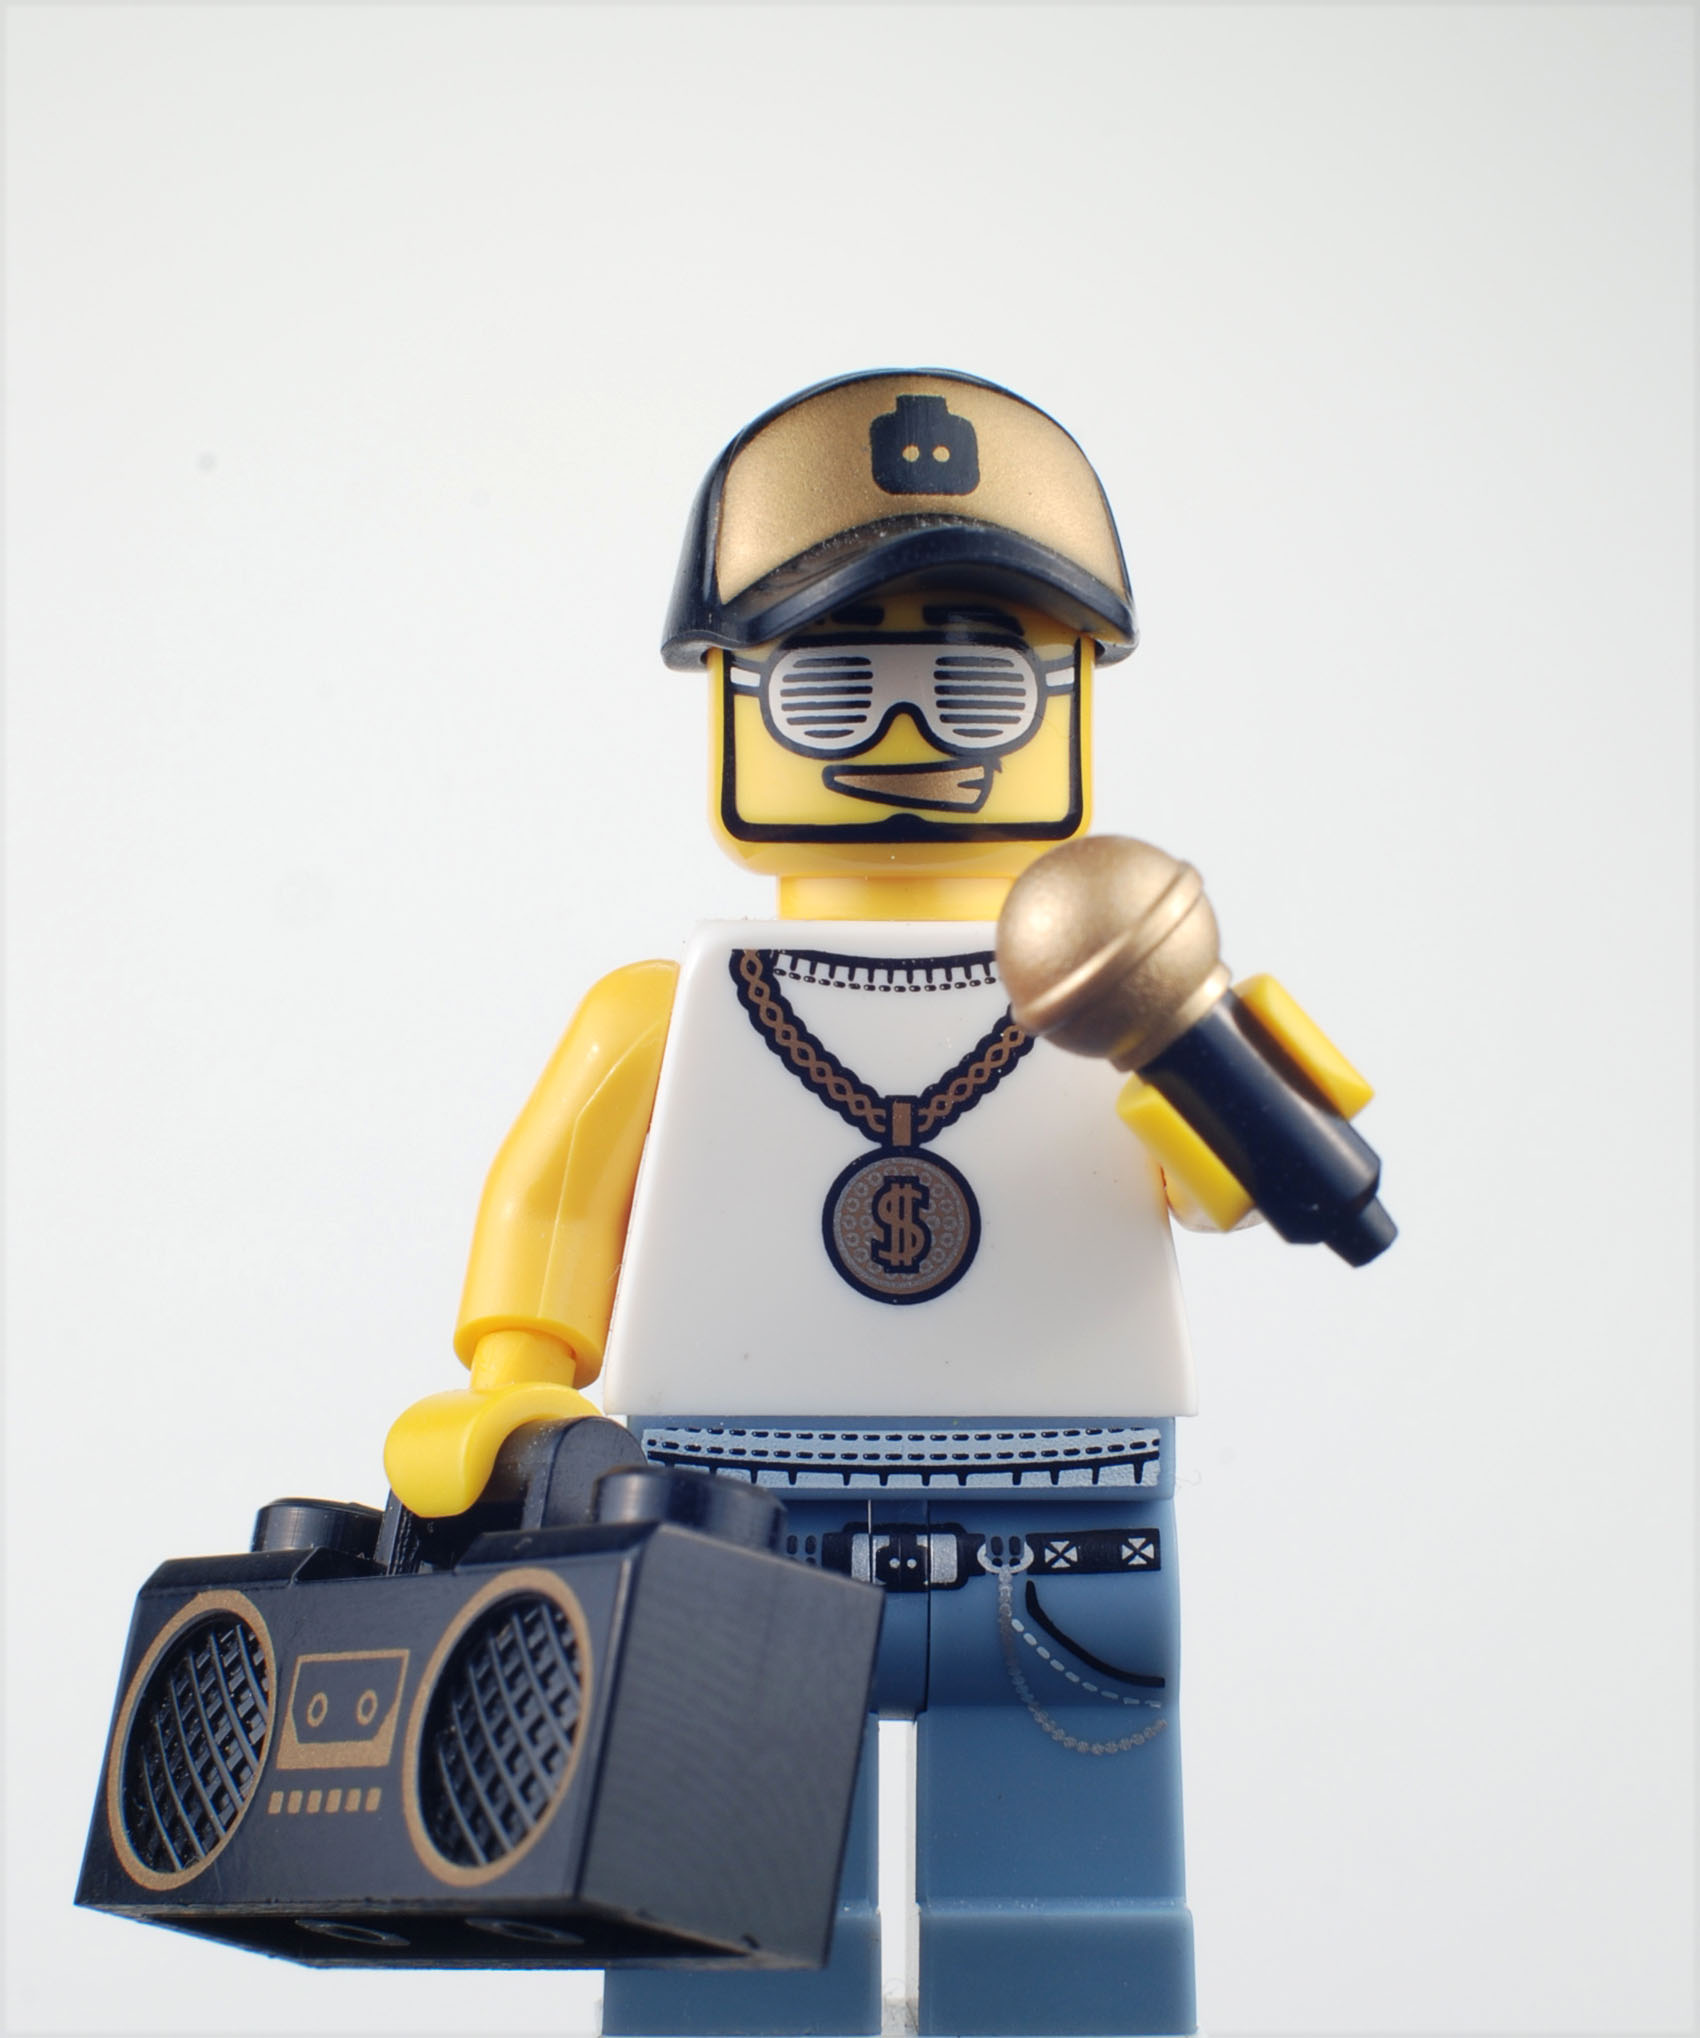 Photographs of 2011 Minifigures